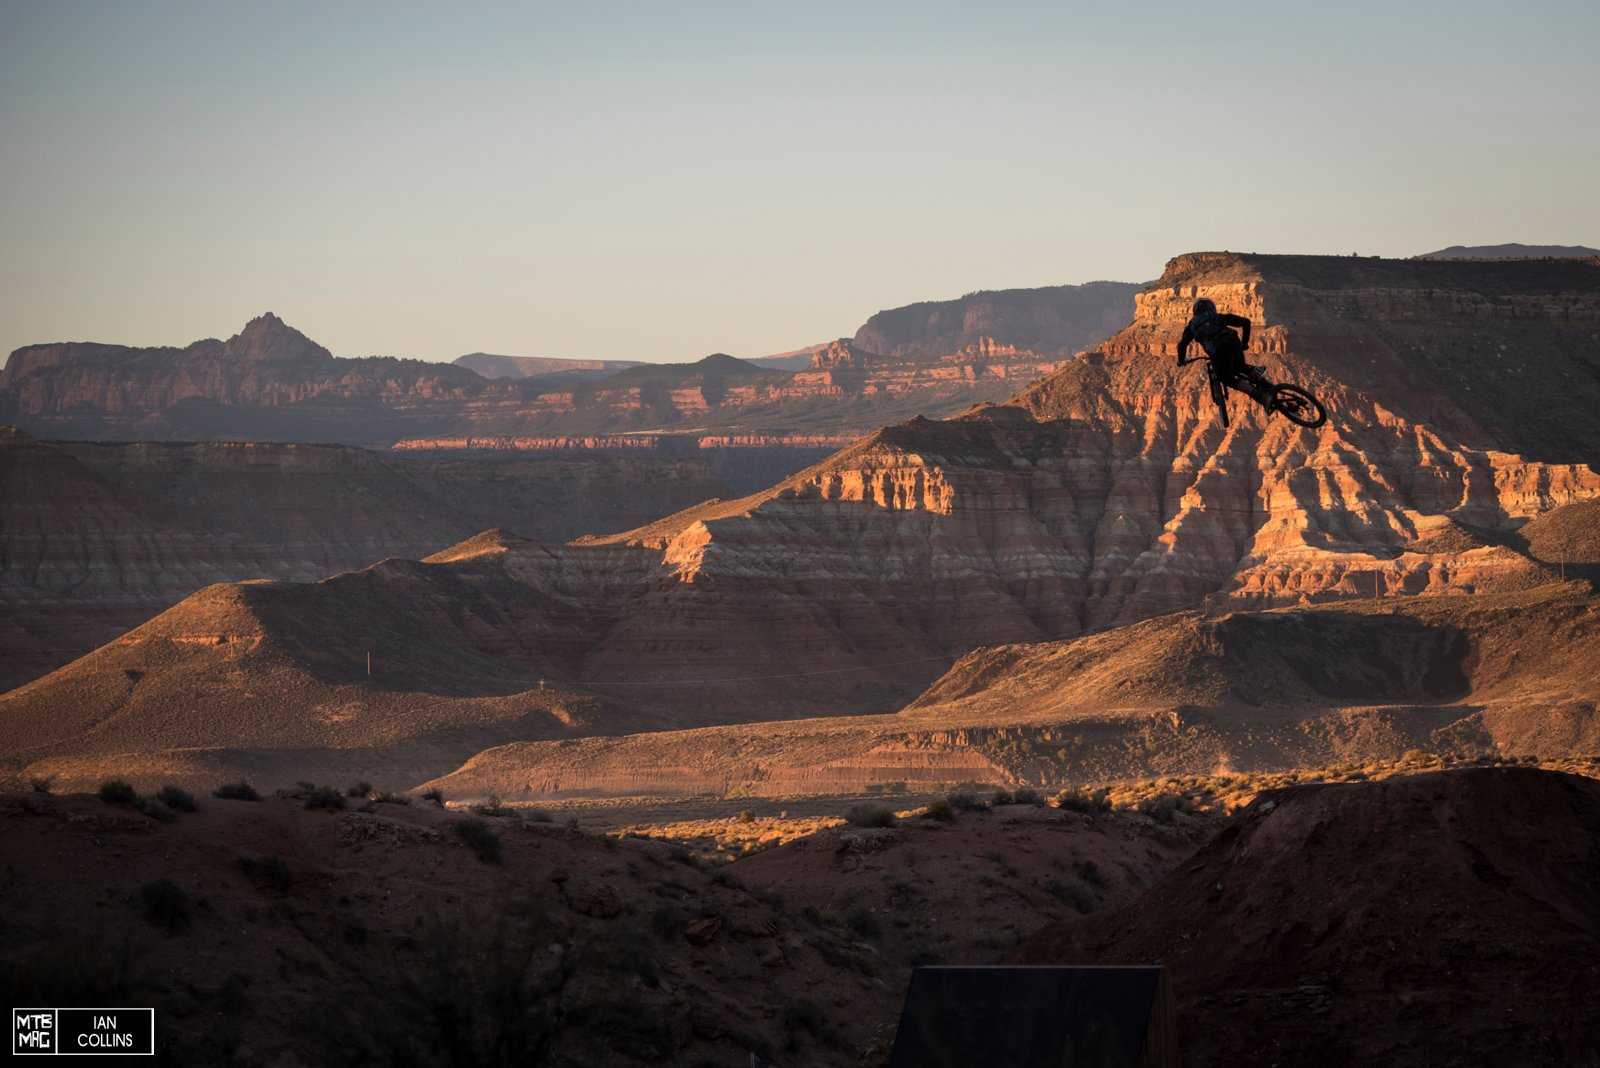 And a big session in the sunset is always a nice way to finish things off. Nico Vink blasting - moto style.